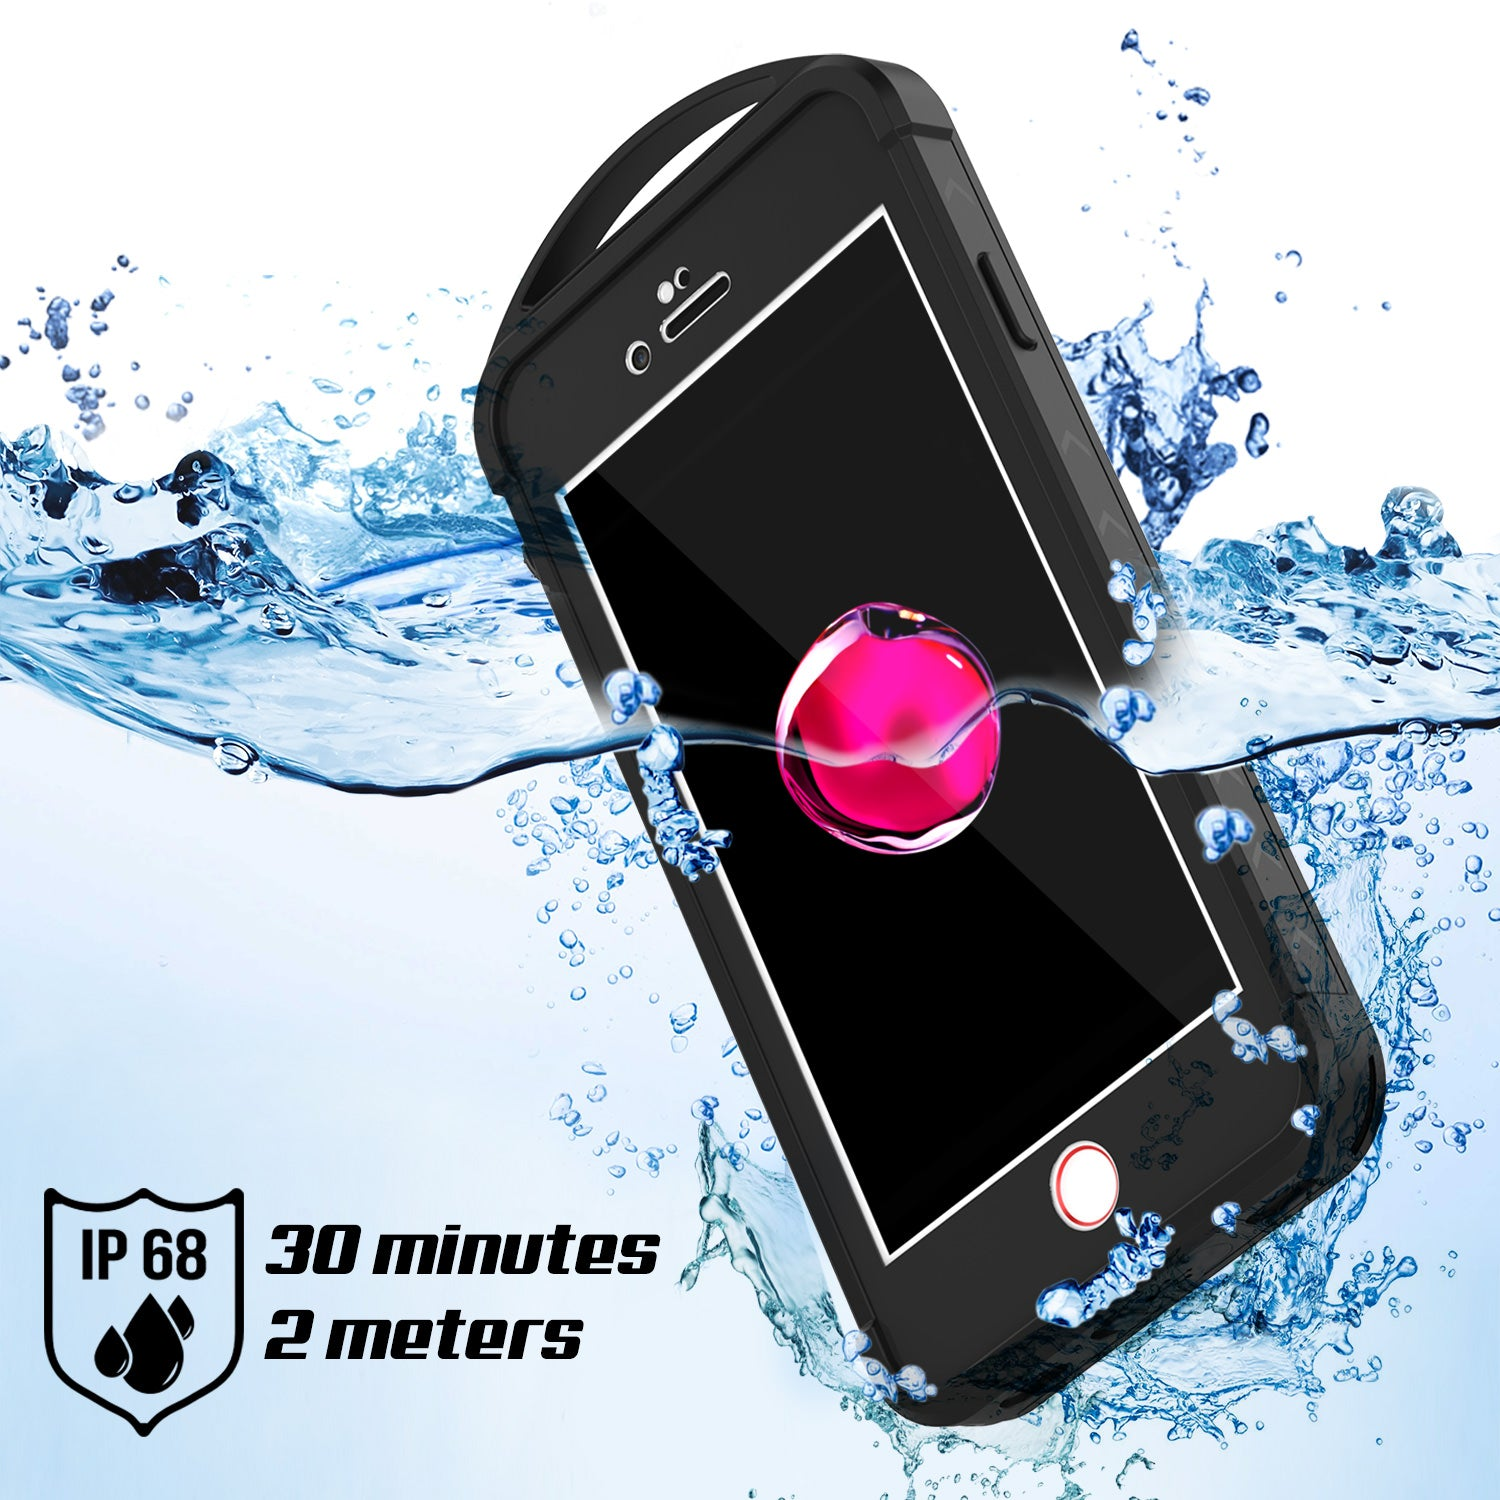 iPhone 7+ Plus Waterproof Case, Punkcase ALPINE Series, CLEAR | Heavy Duty Armor Cover